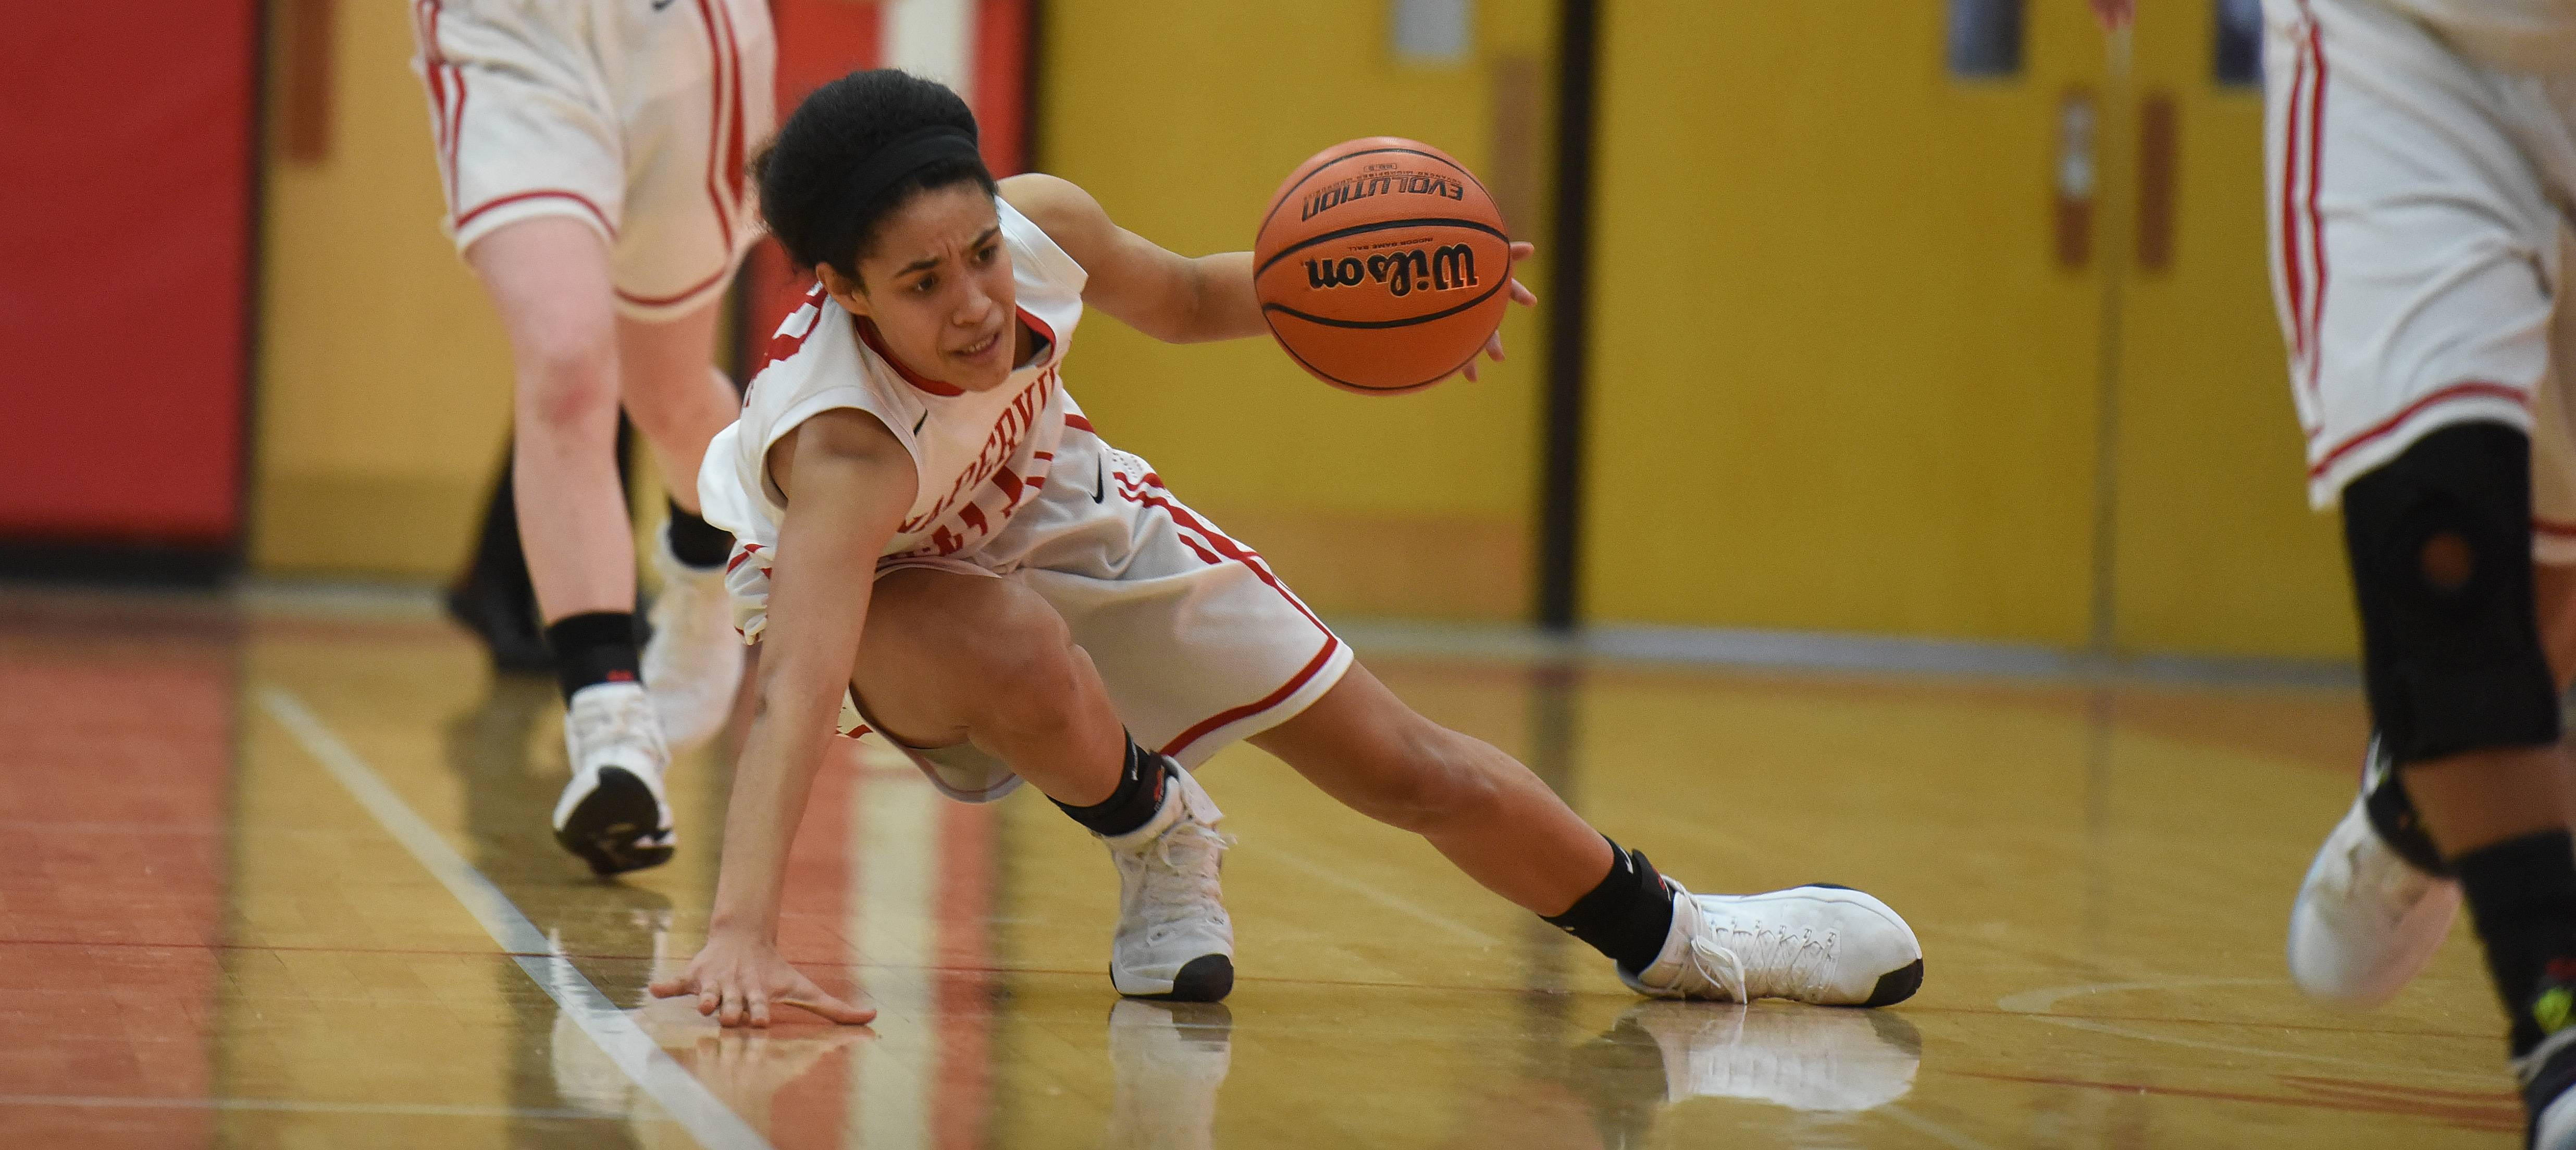 Naperville Central's Mia Lakstigala (31) drive the ball during the Metea Valley at Naperville Central girls basketball game Thursday.